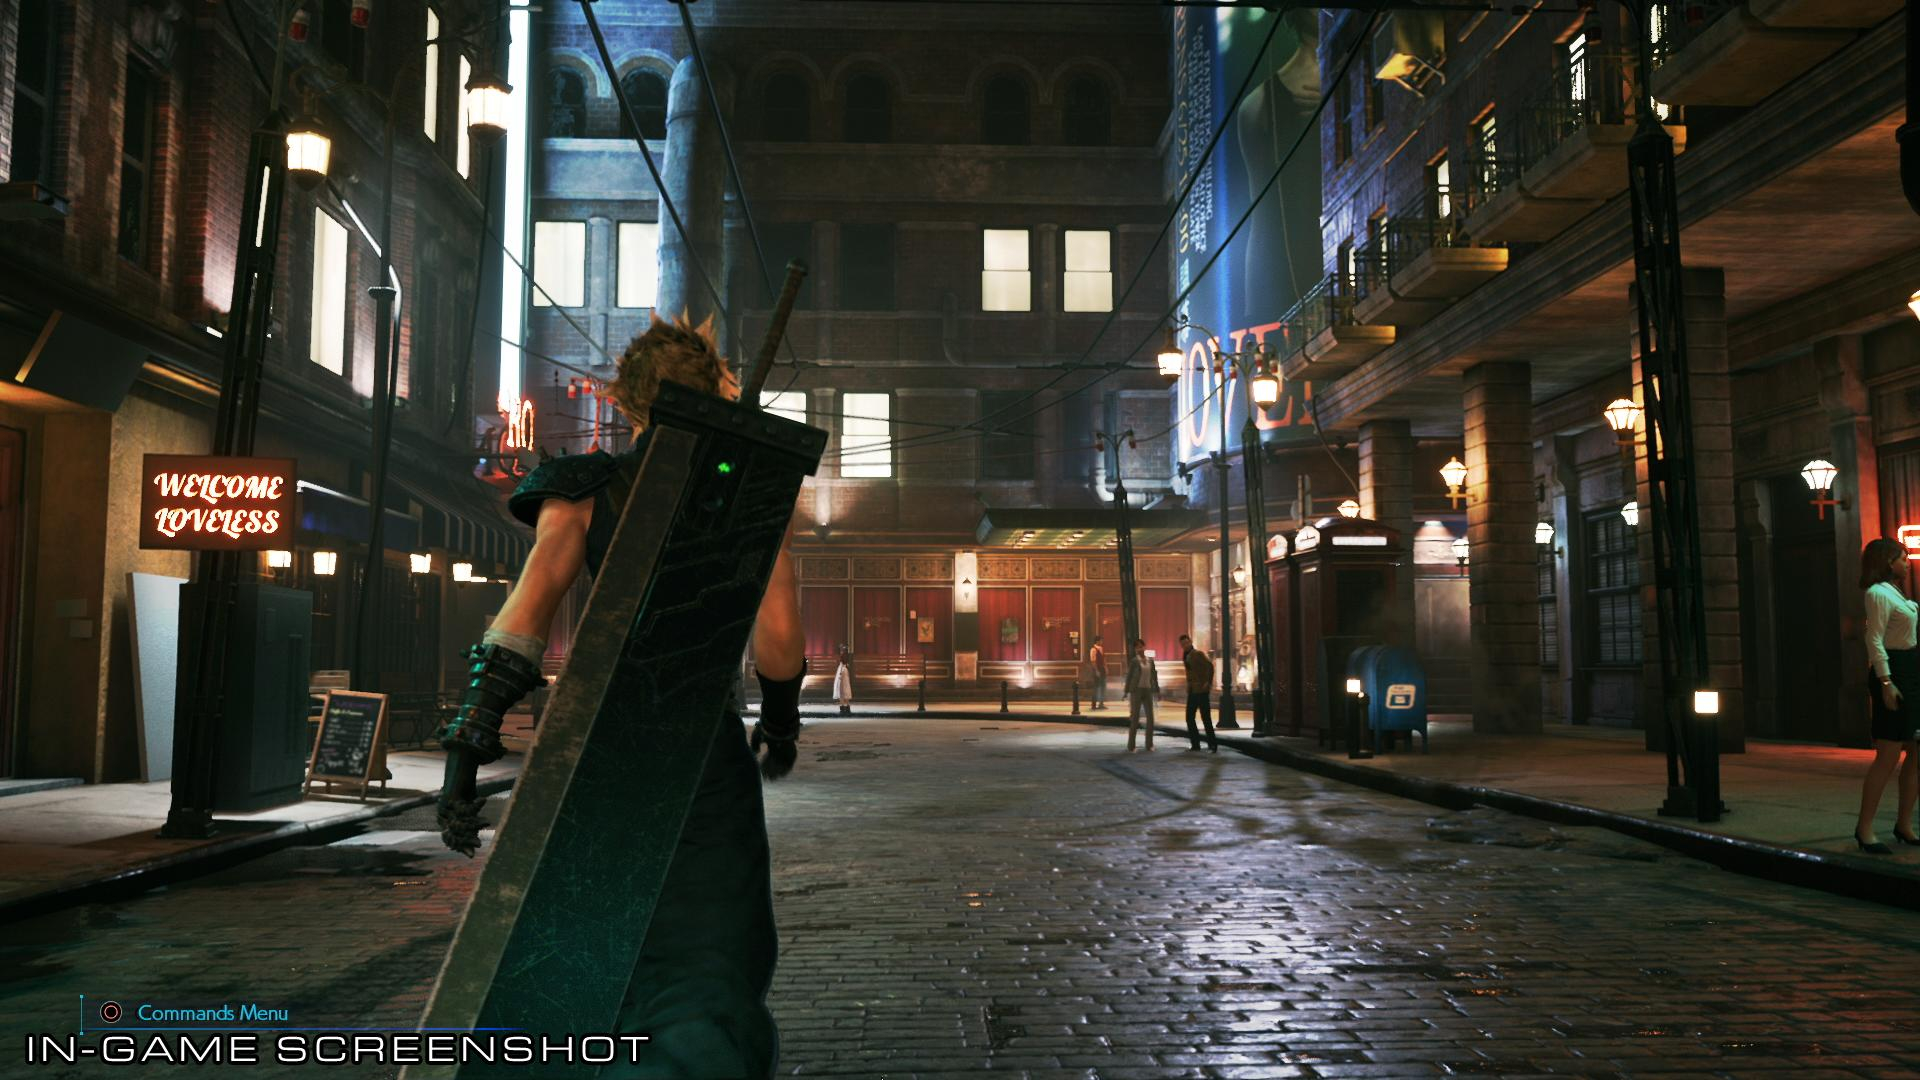 Final Fantasy VII Remake New Concept Art and Image from